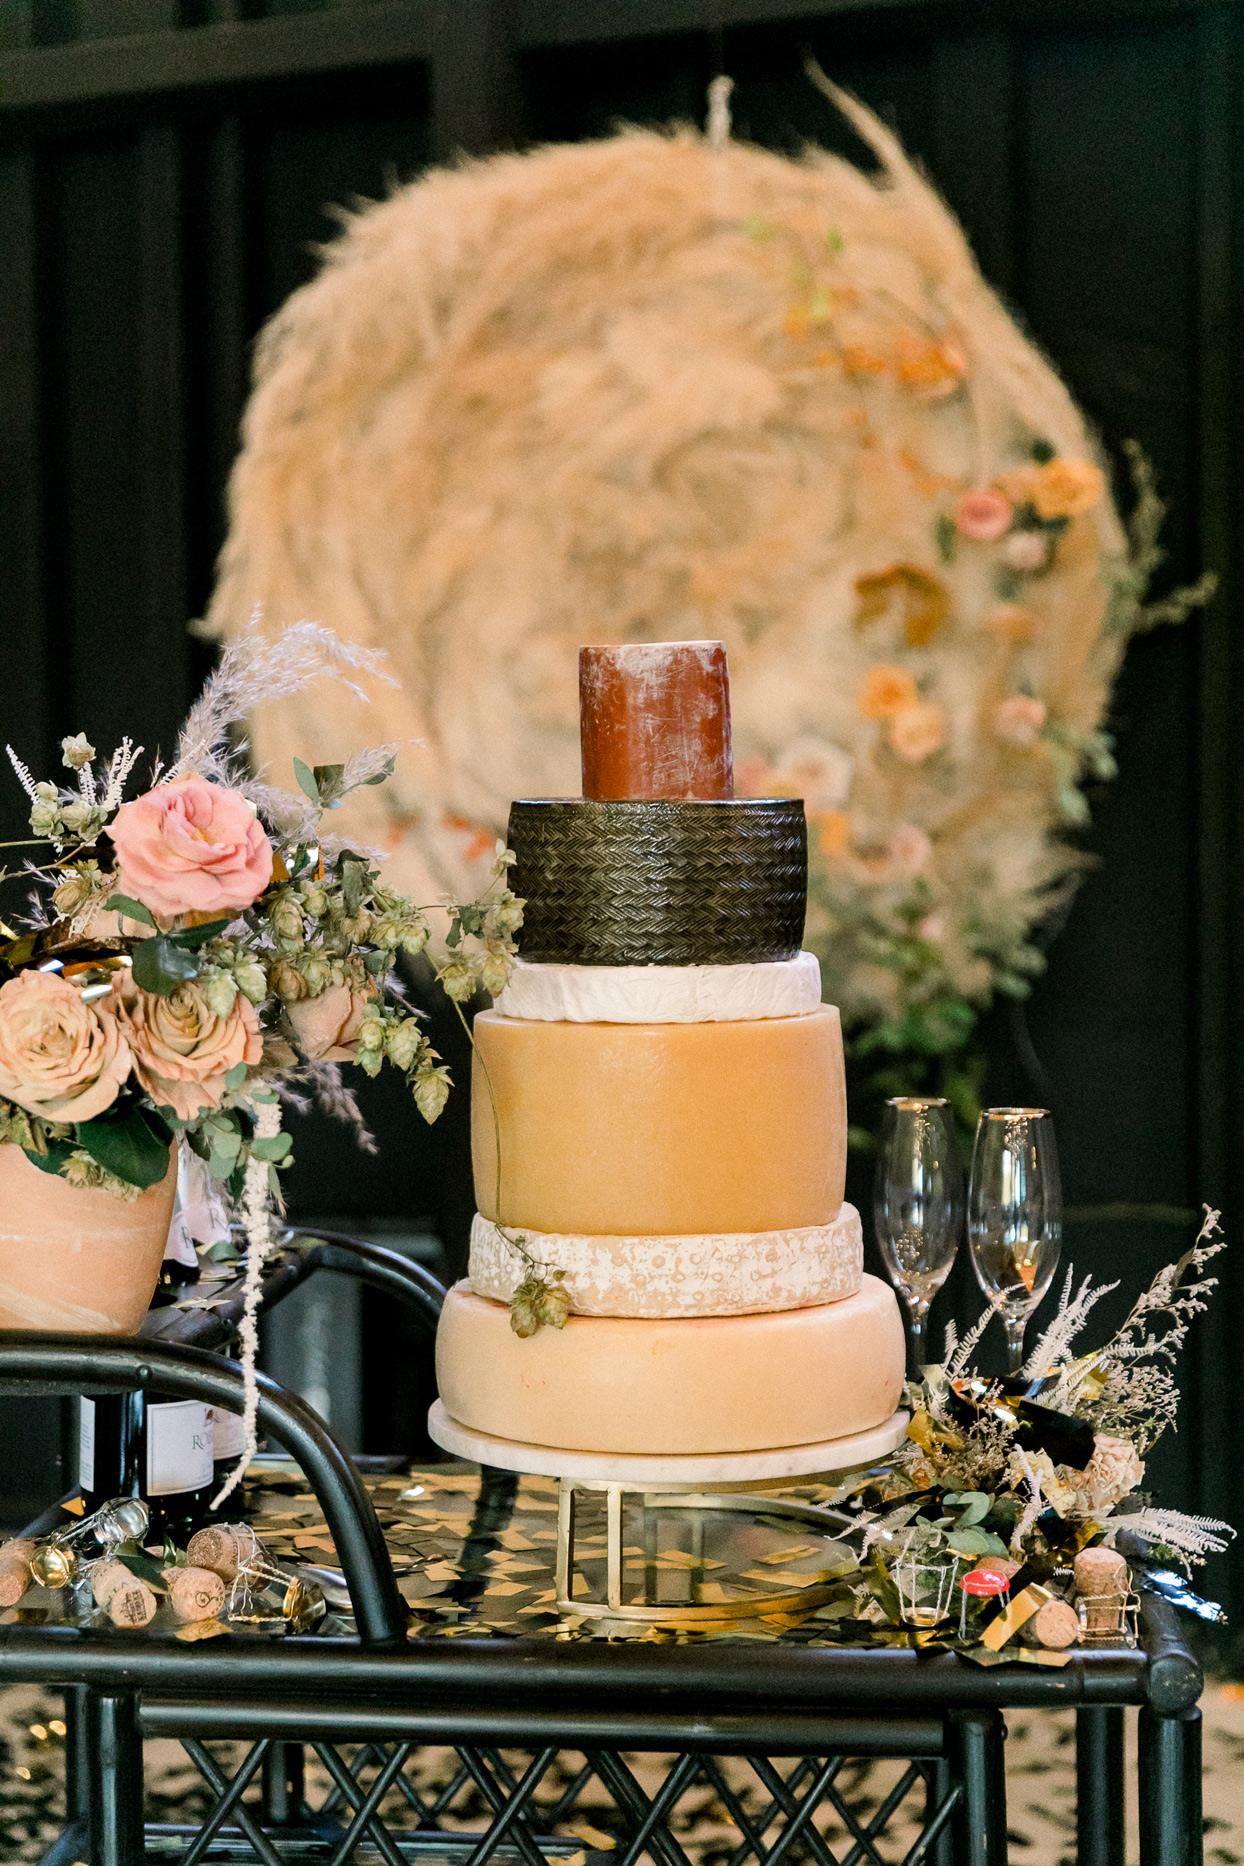 wedding cake of stacked wheels of cheese